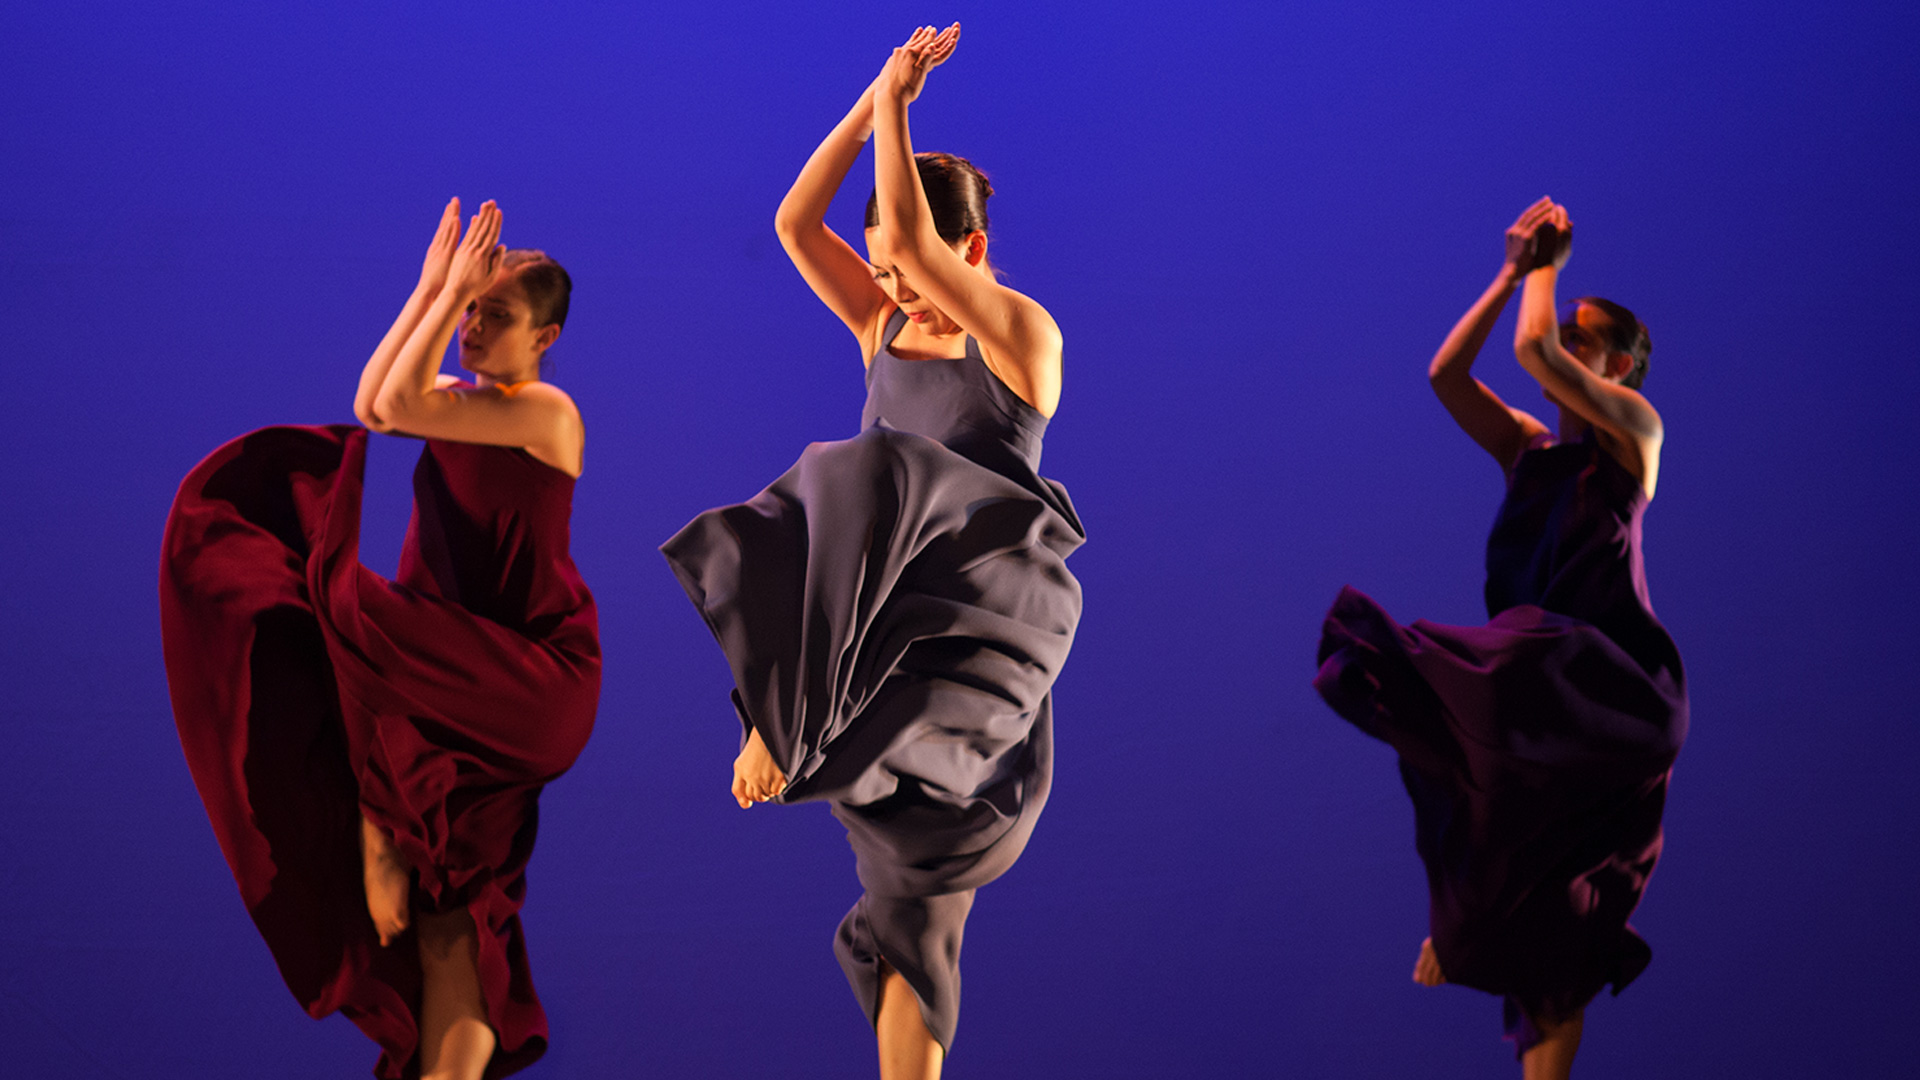 Dance performances are simultaneously streamed and recorded using Matrox Monarch HDX.